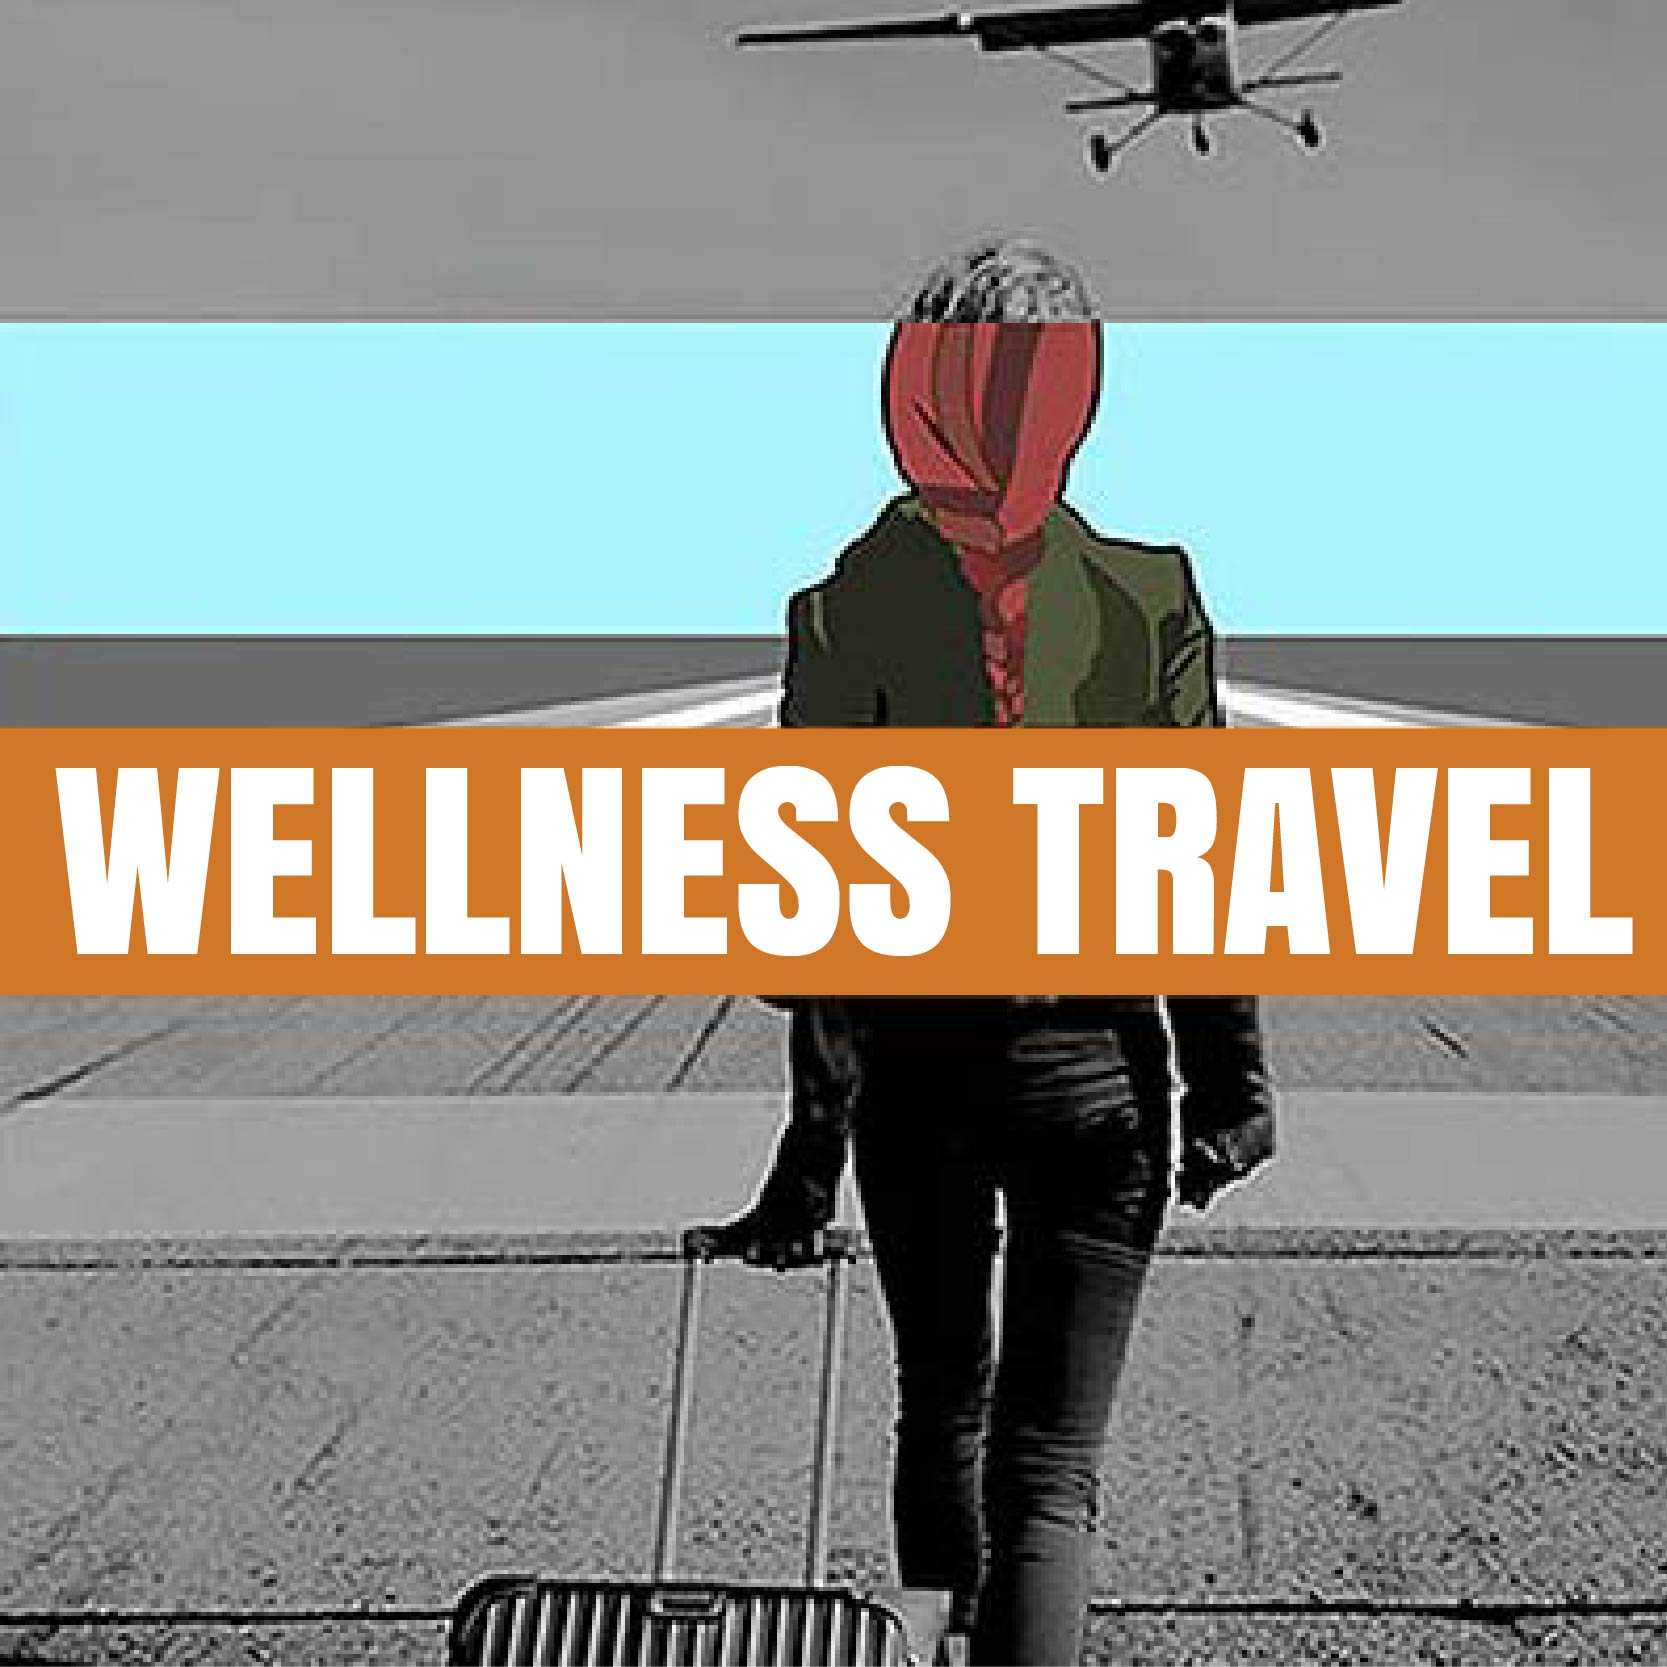 WELLNESS TRAVEL COPERTINA-01